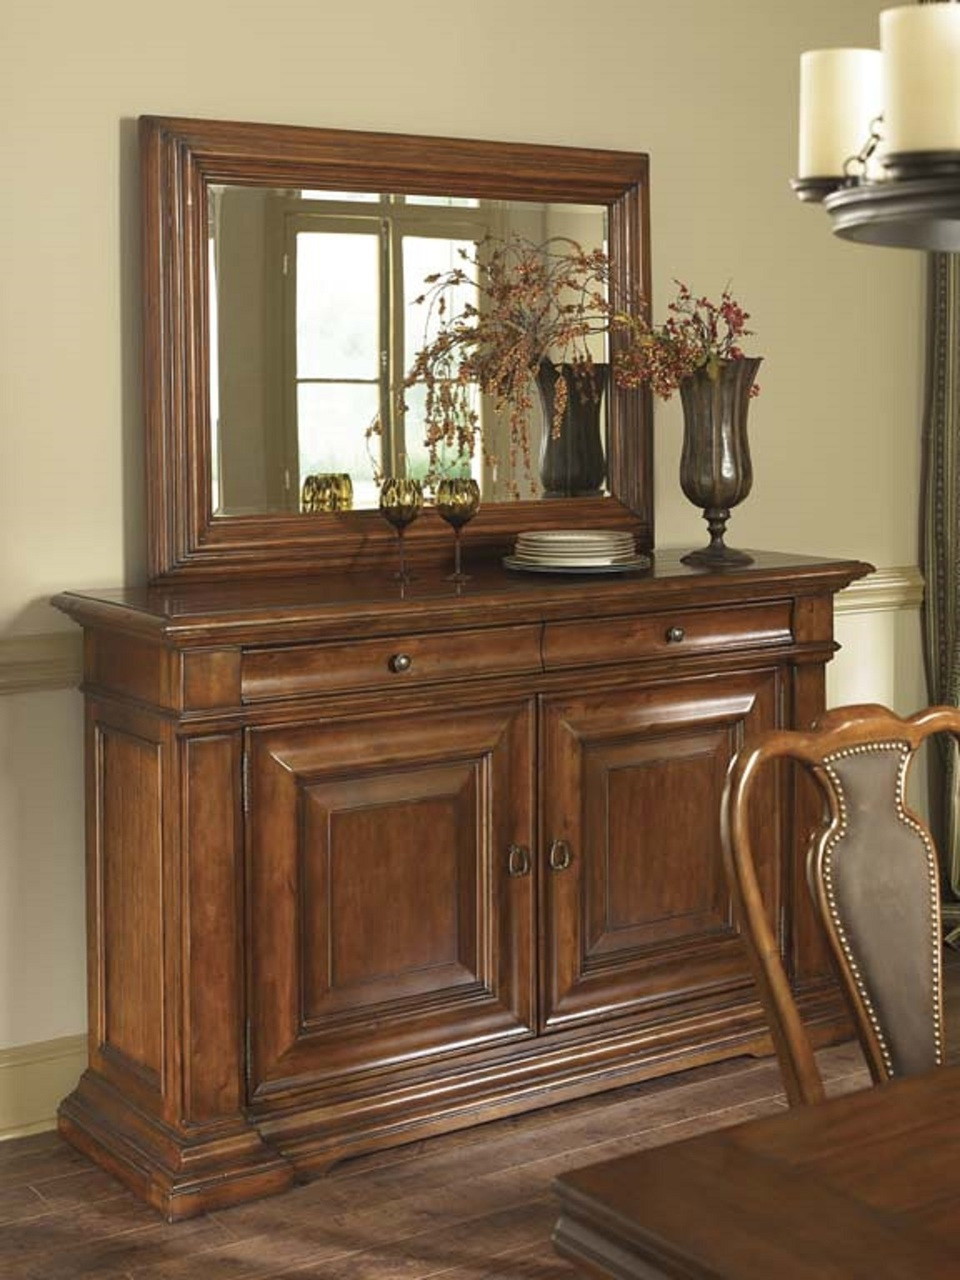 American Drew Furniture Discontinued : american, furniture, discontinued, American, Furniture,, European, Traditions, Collection,, Cherry, Mirror,, Landscape, Foyer, North, Carolina, Wholesale, Closeout, Discontinued, Furniture